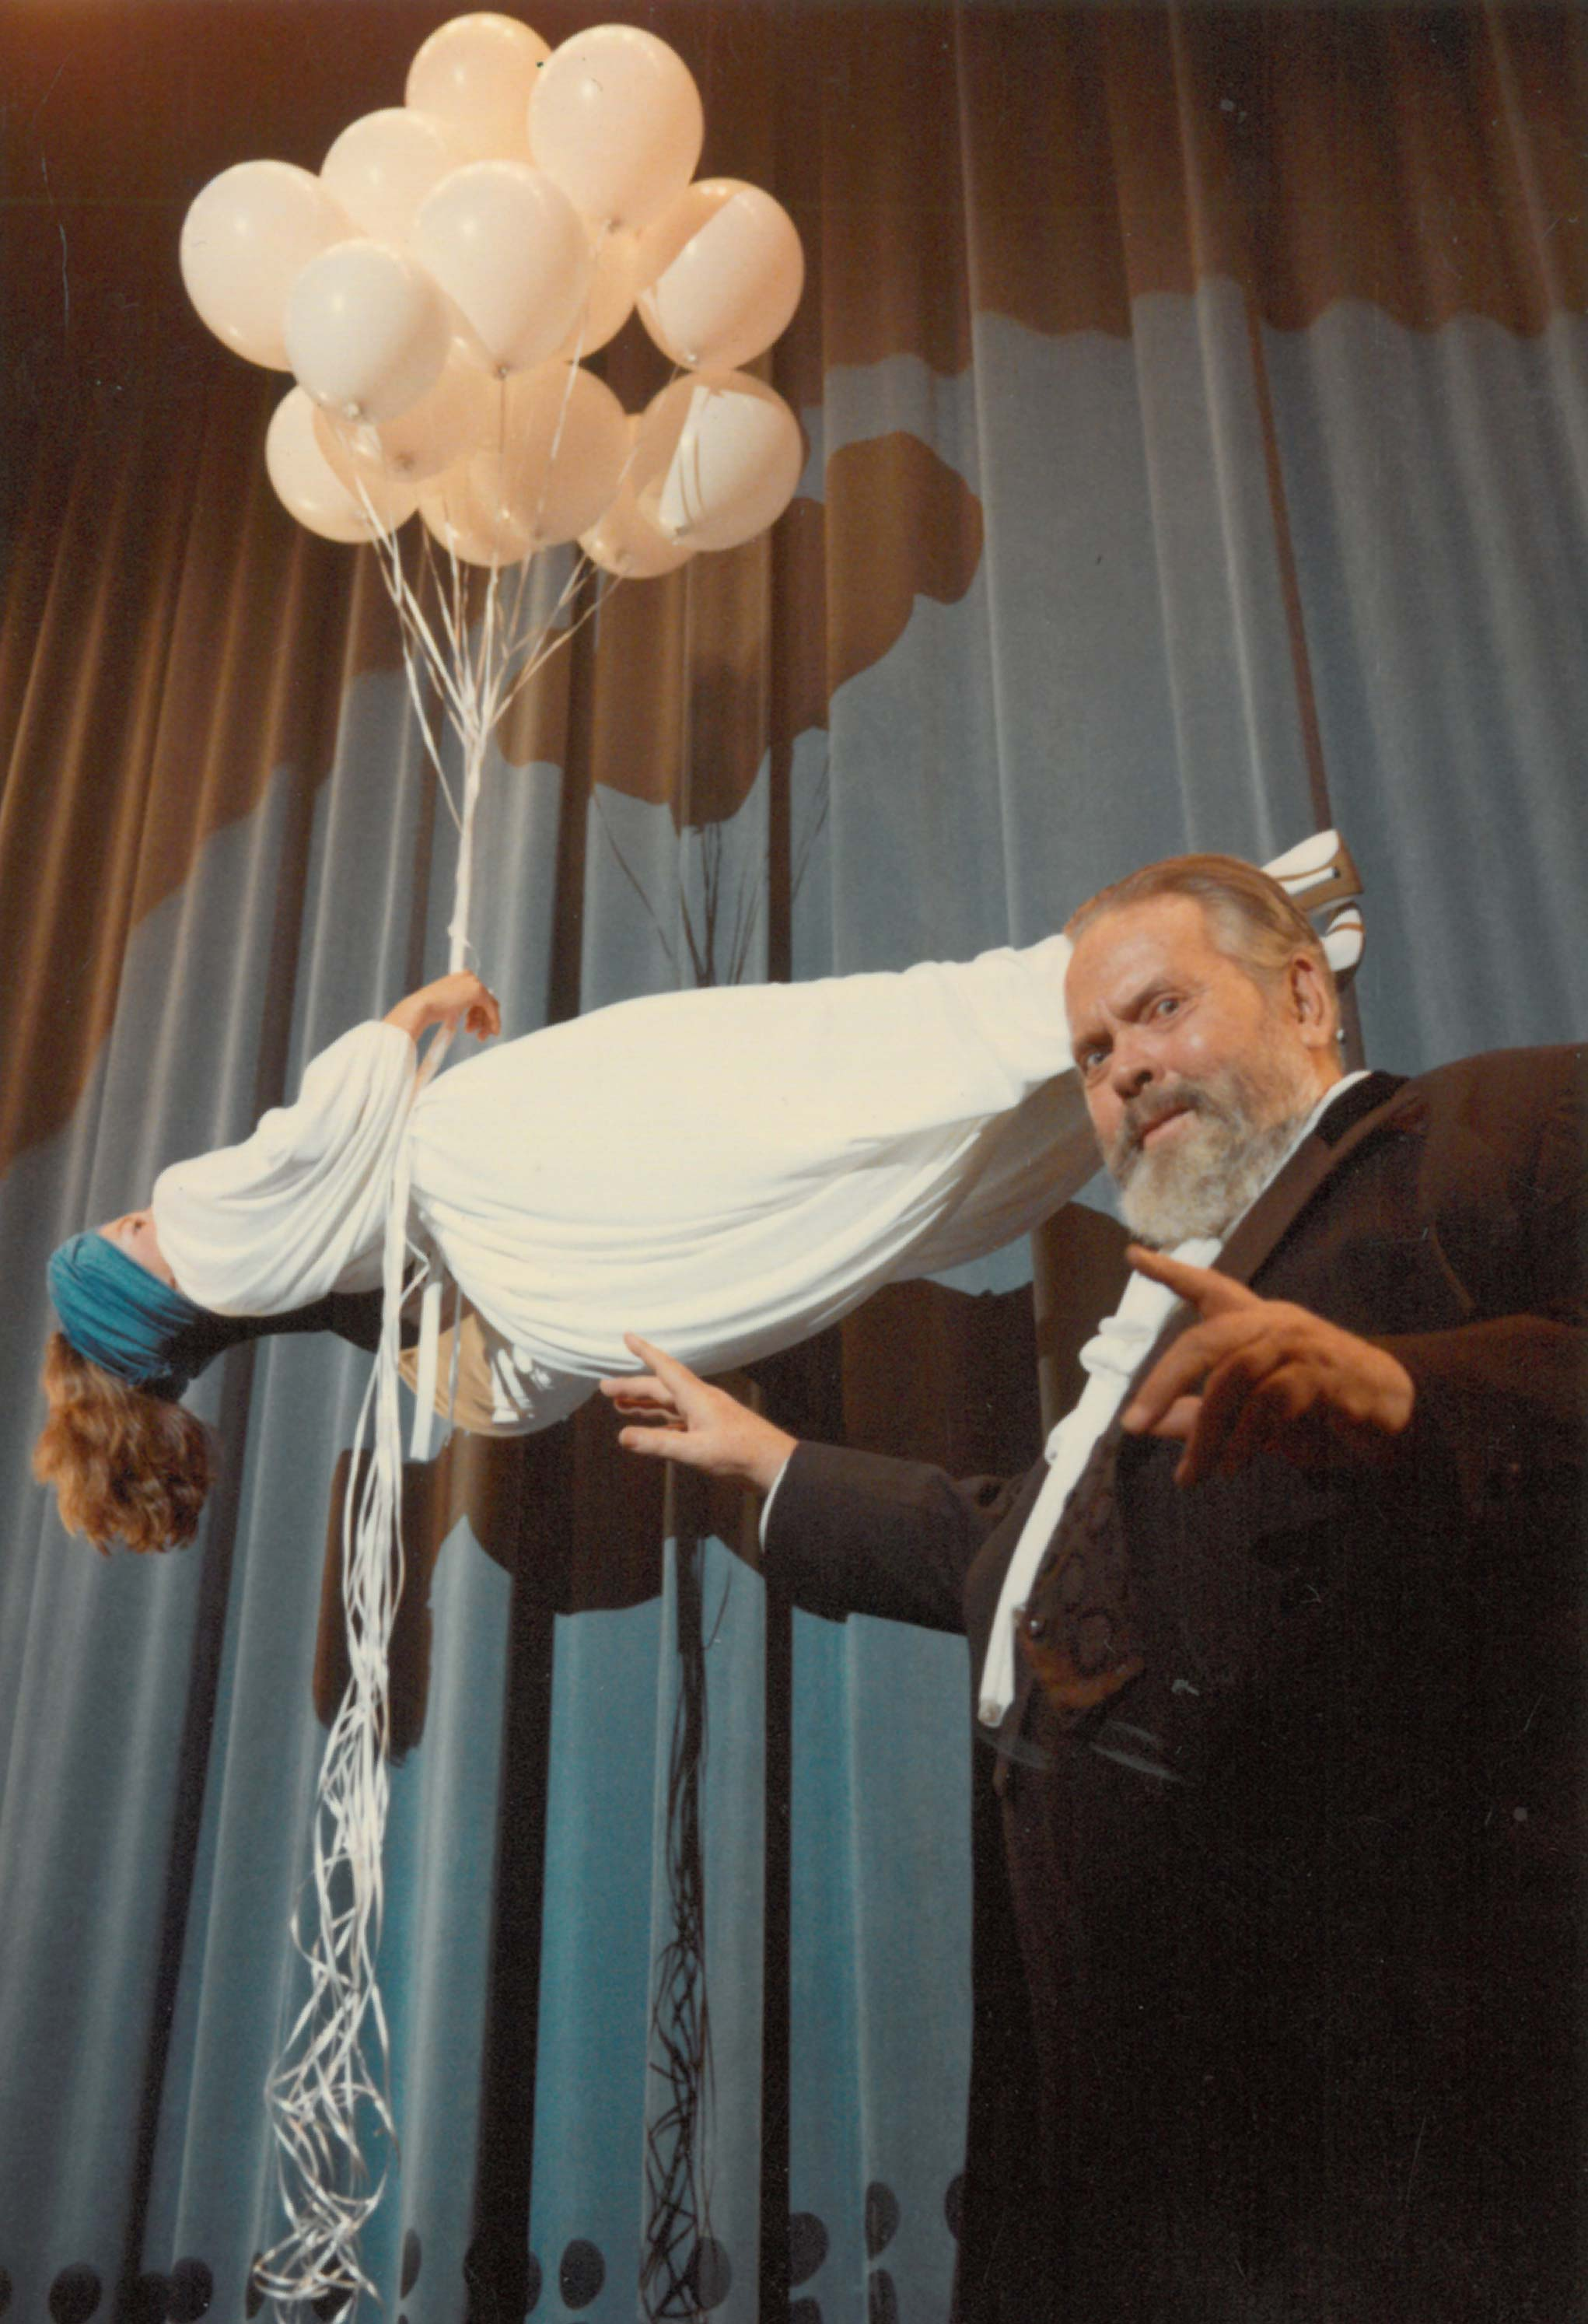 Photograph by Oja Kodar (?): One of several prints of Welles performing a levitation trick, cropped and used for the cover of a special issue of Paris Vogue(1982/1983). Courtesy the University of Michigan Library (Special Collections Library)